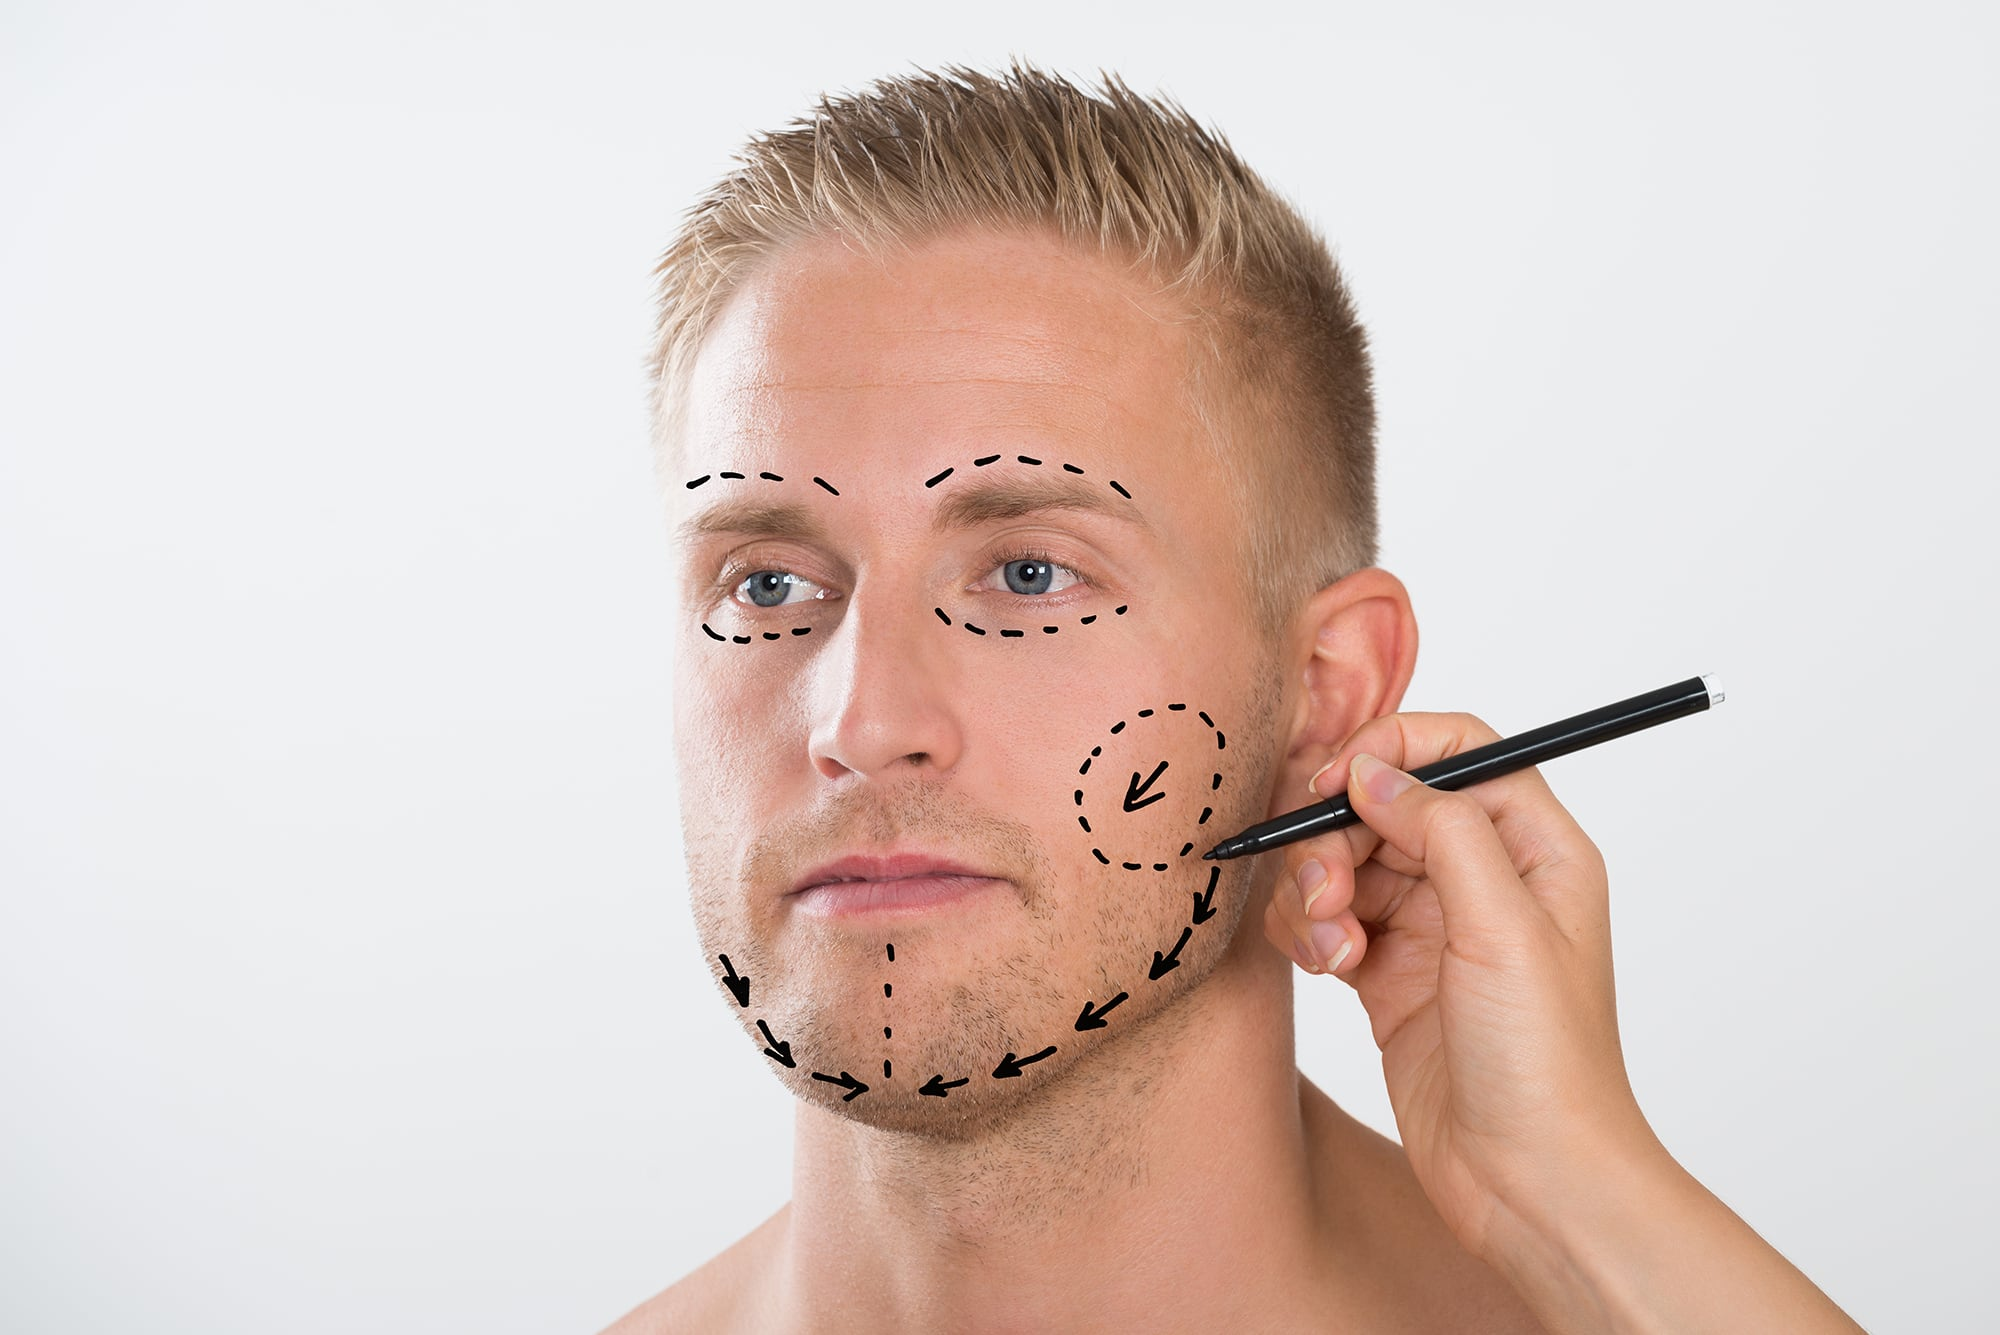 Allentown, PA patient getting prepared for facial liposuction